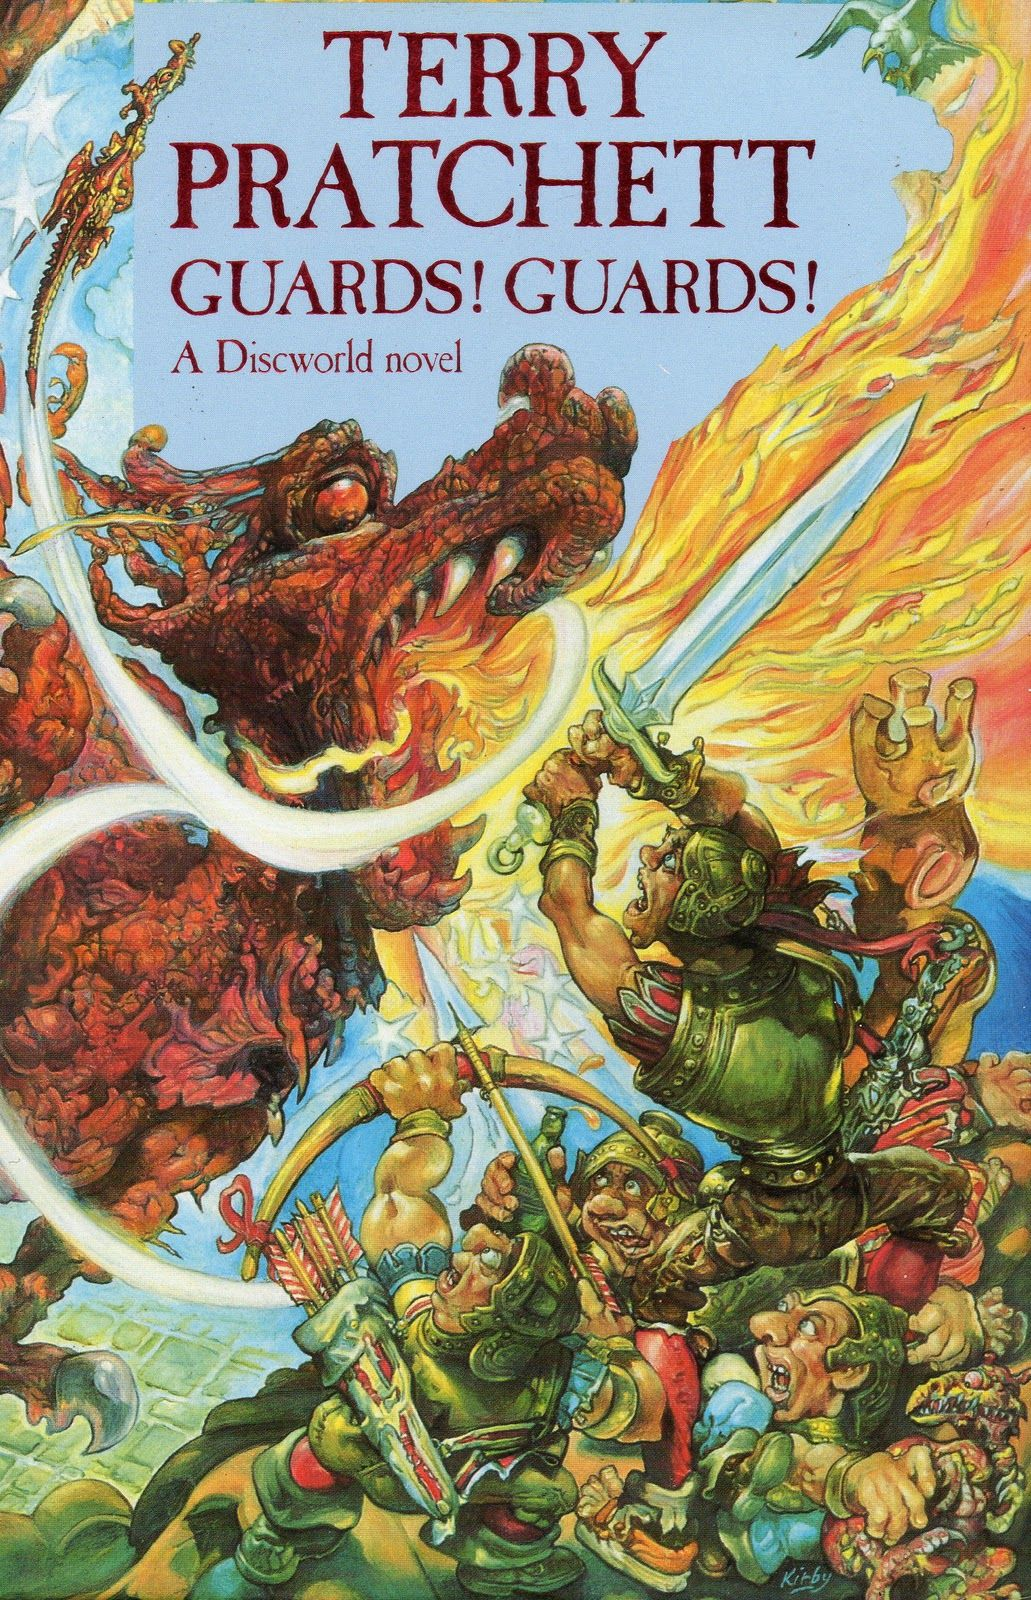 Guards Guards By Terry Pratchett Discworld Books Terry